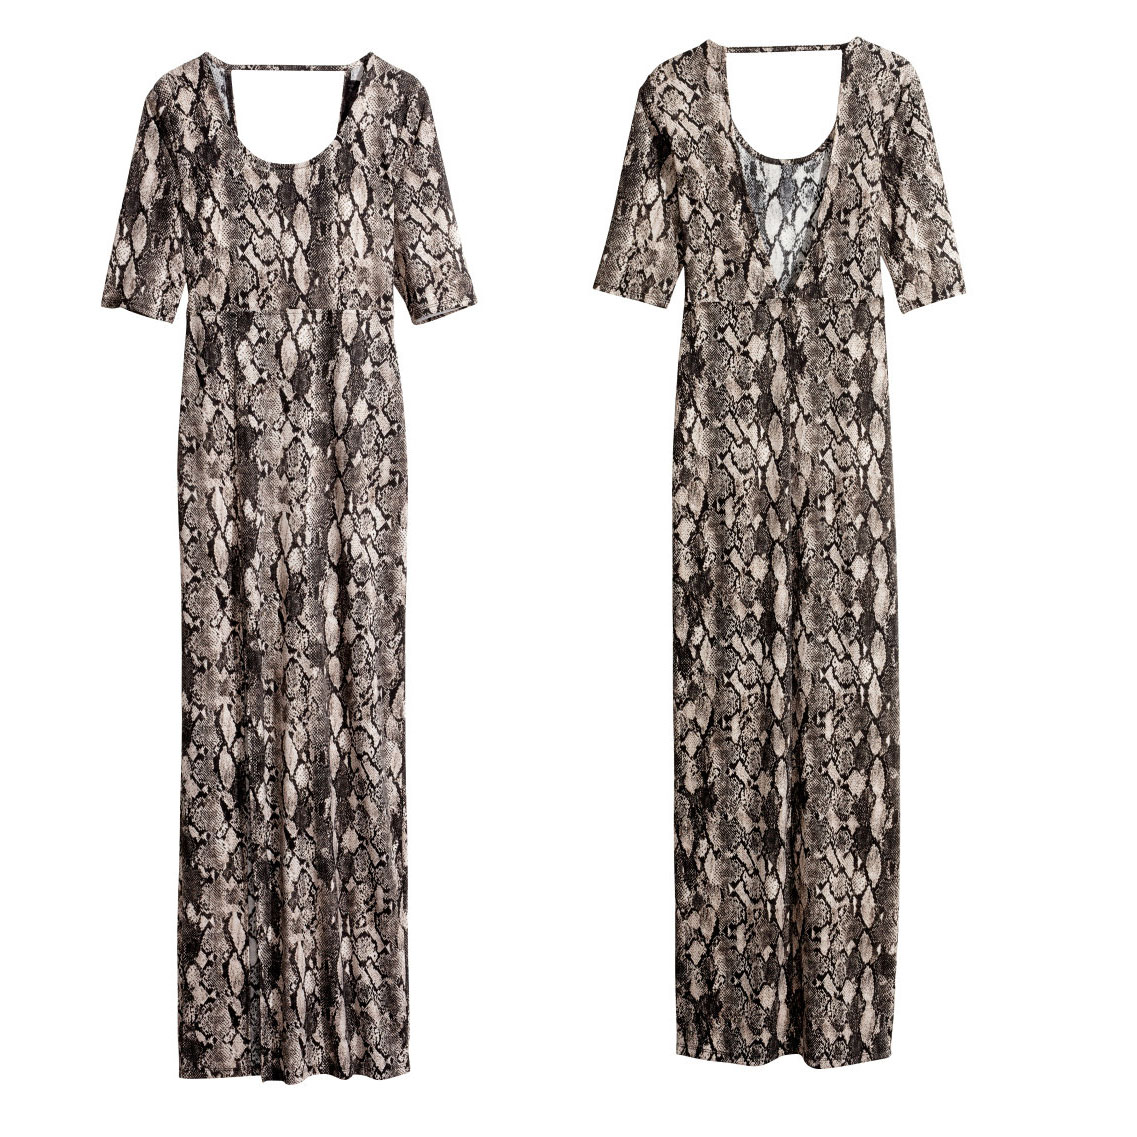 2014 snakeskin pattern knit fifth after unilateral high-slit sleeve V- neck dress haoduoyi open lower shipping